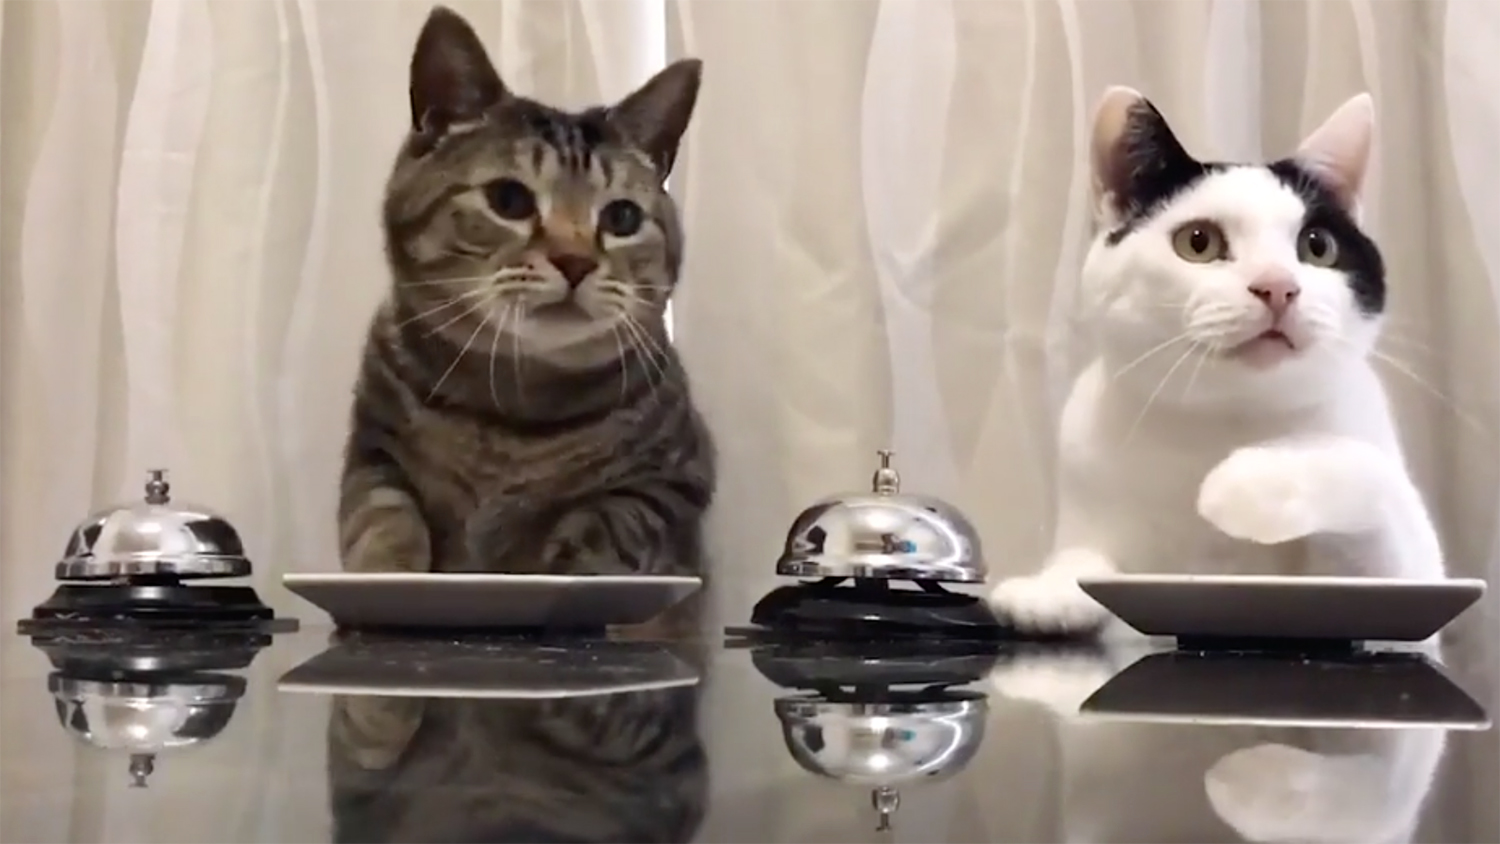 cats ring bell for treats